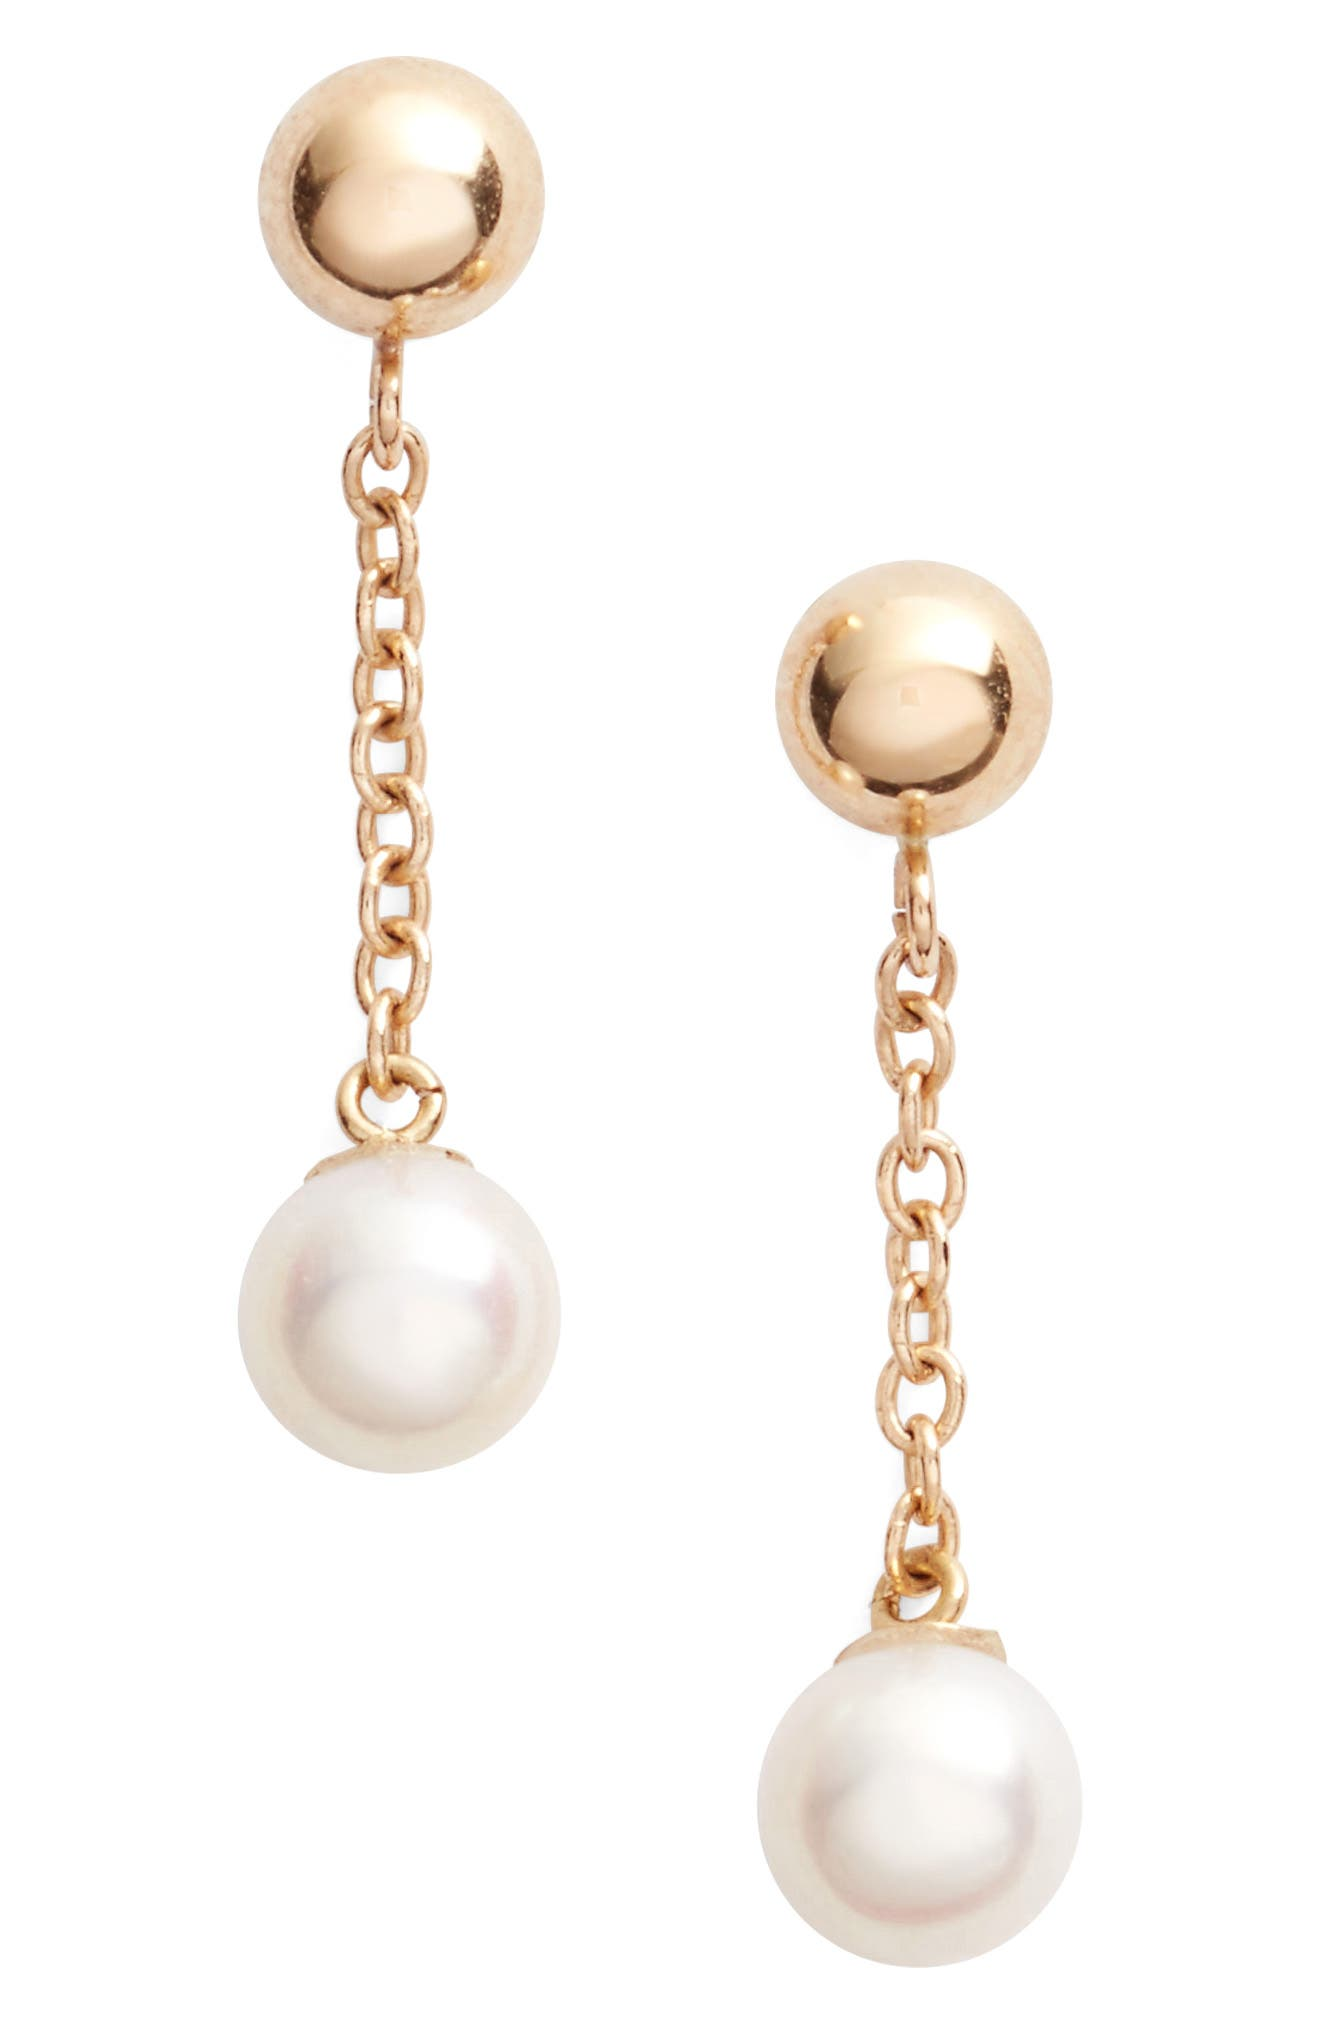 Linear Drop Pearl Earrings,                             Main thumbnail 1, color,                             YELLOW GOLD/ WHITE PEARL